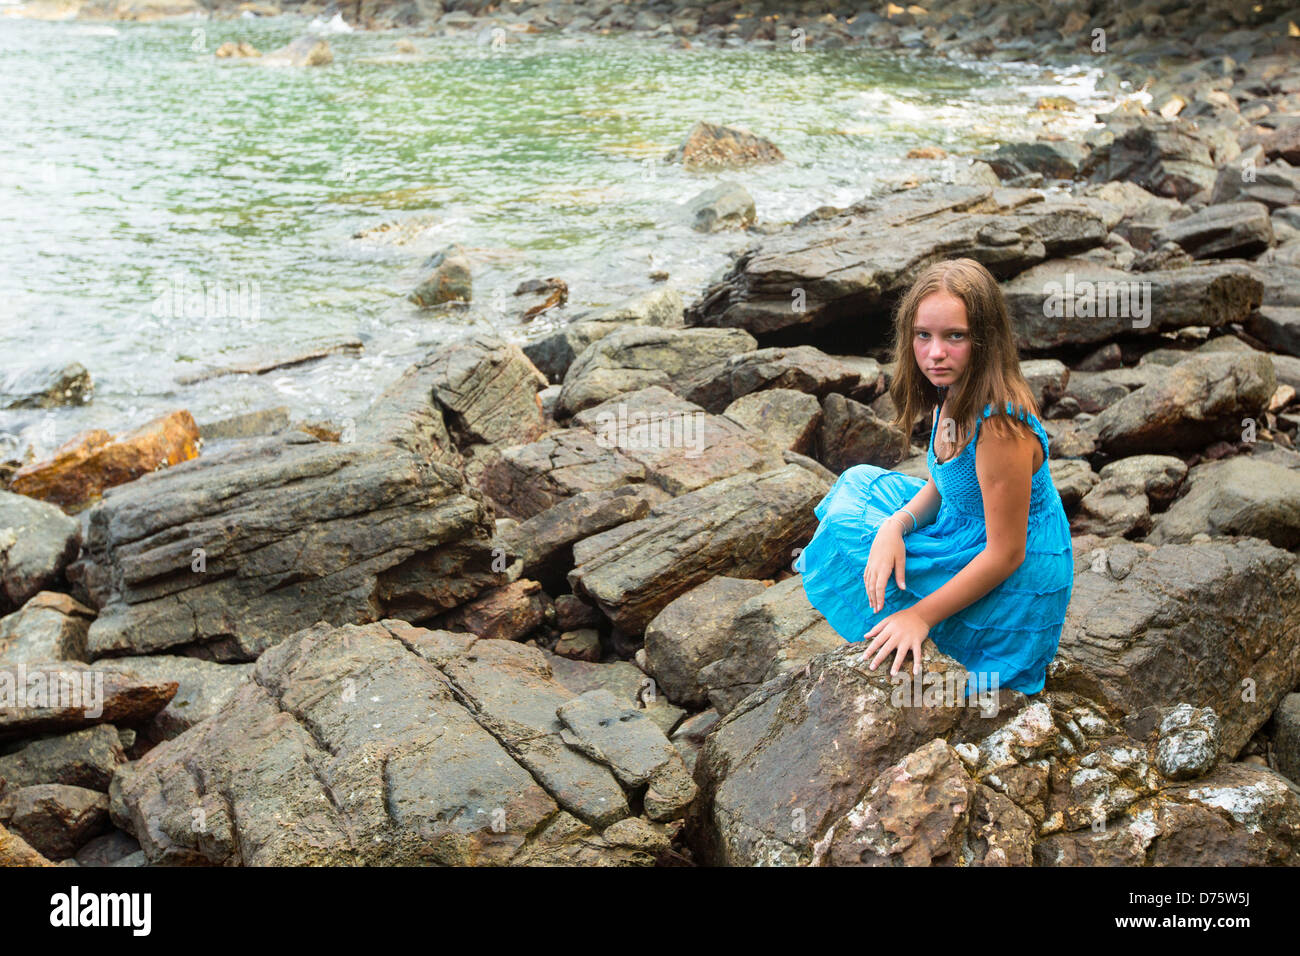 Teen-girl in a blue dress in the rocks of the coast. - Stock